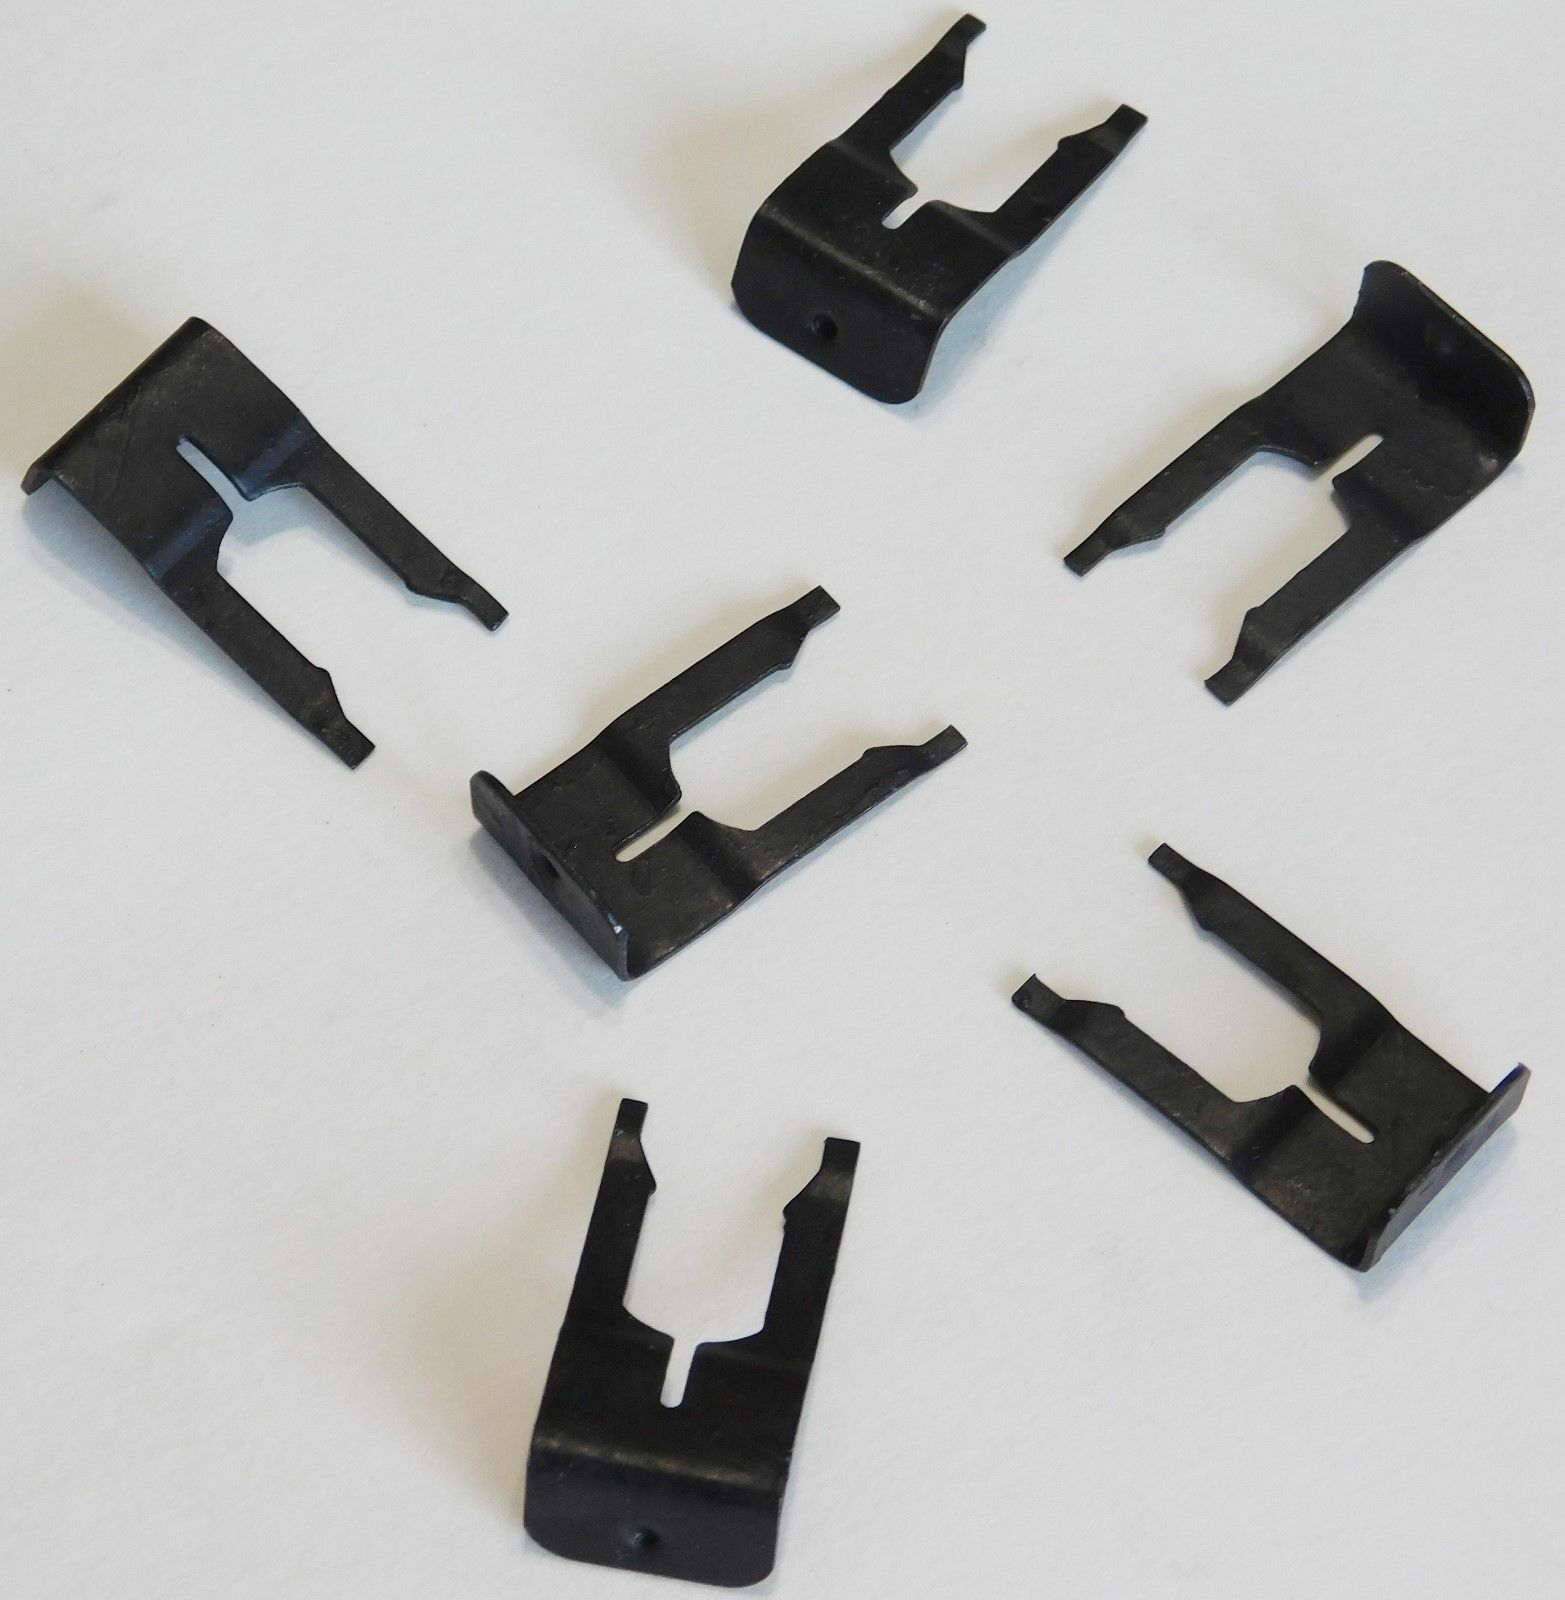 1994-1998 Mustang Vertical Headlight Adjuster Retainer Clips Fasteners Clamps